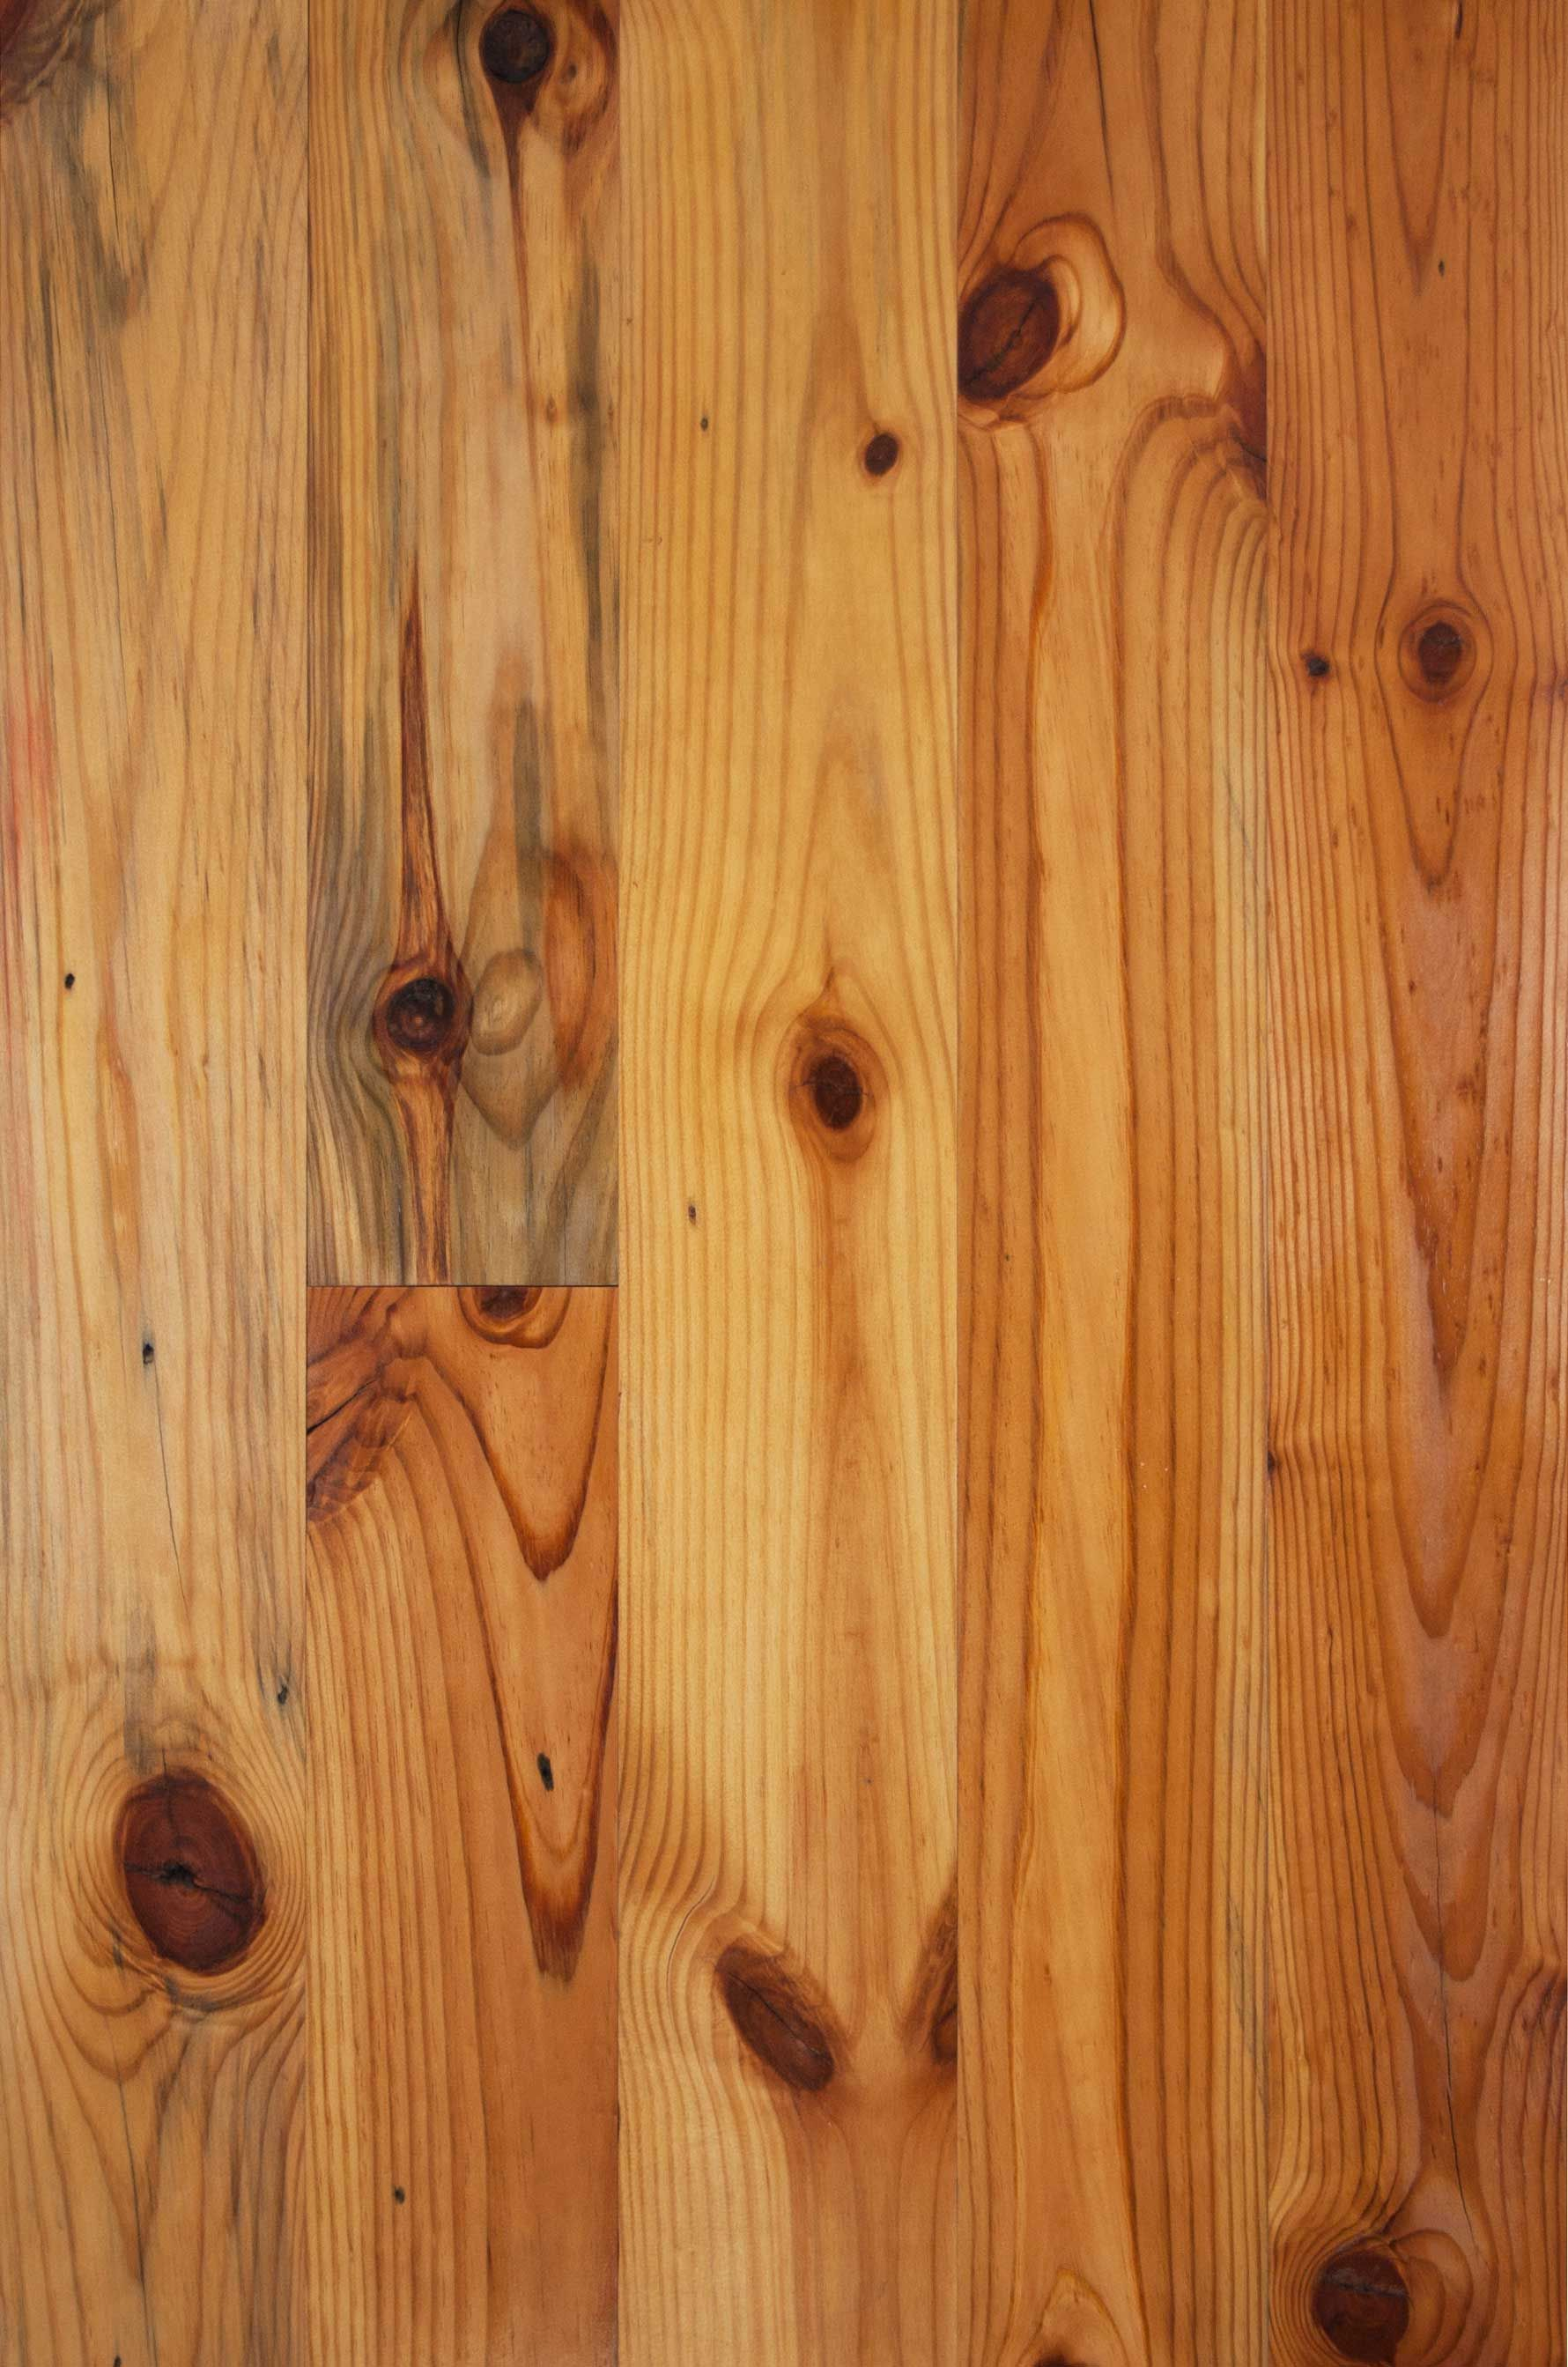 Longleaf Lumber reclaimed Run-of-the-Mill Southern Yellow ...